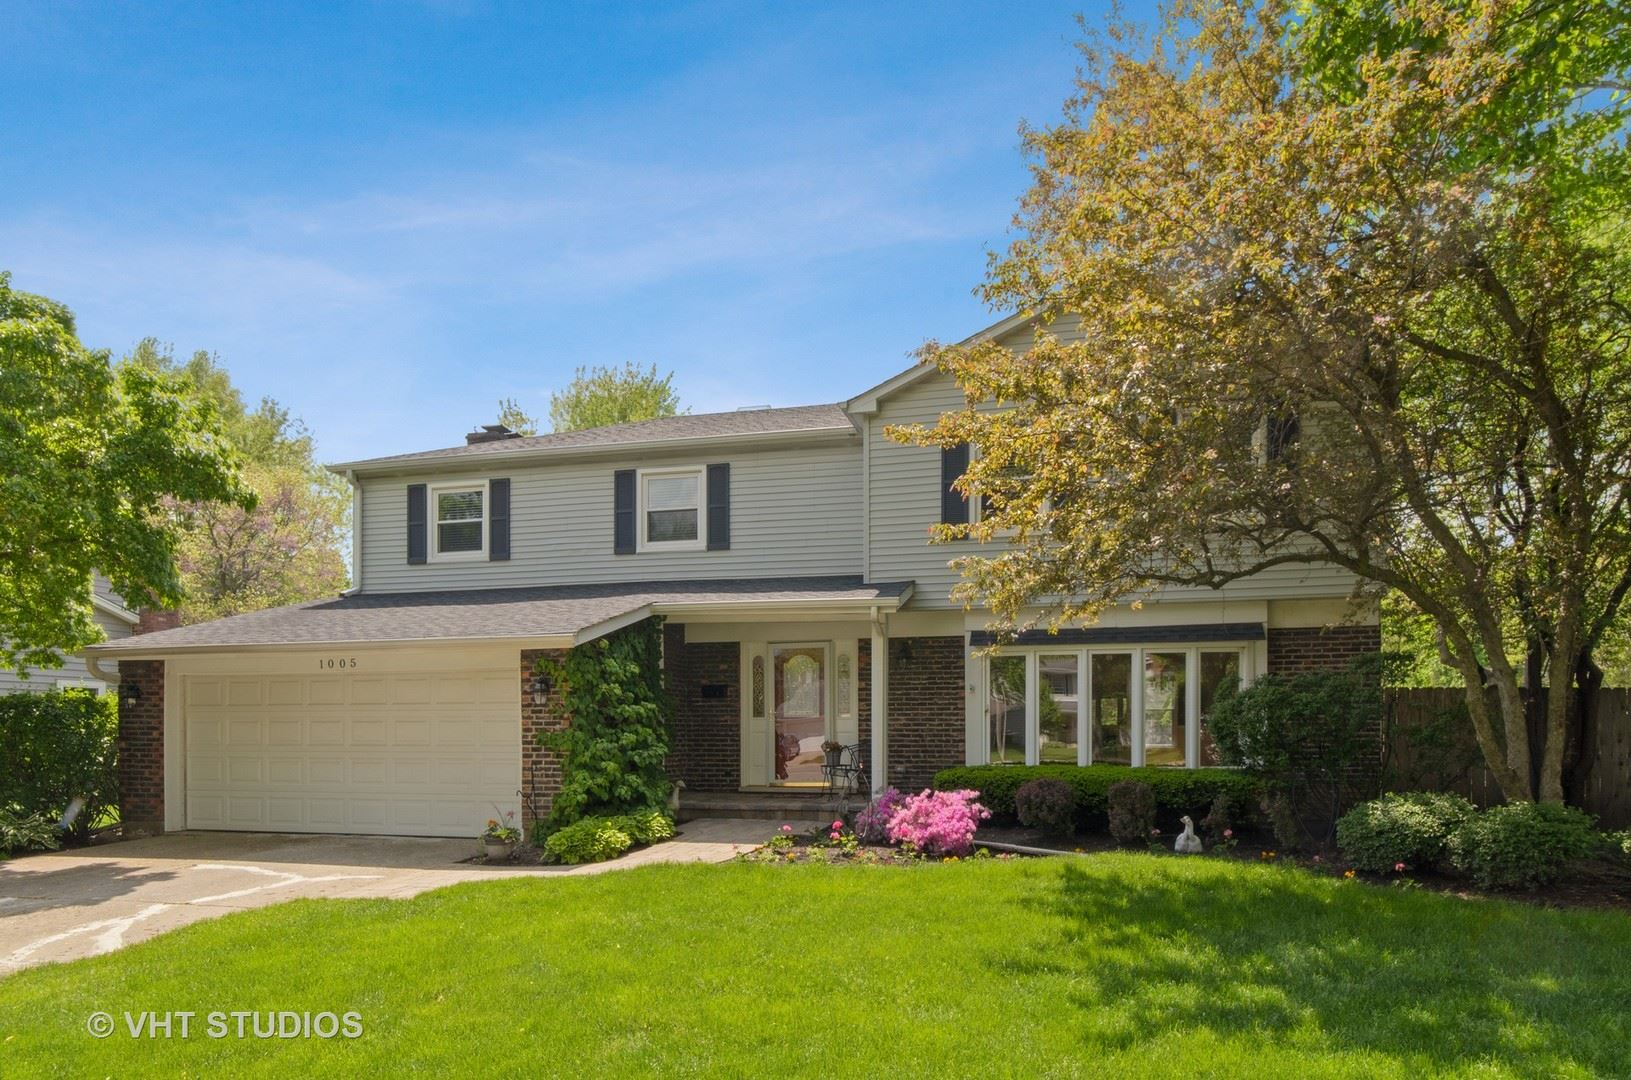 1005 S 4th Avenue, Libertyville, IL 60048 - #: 10727019